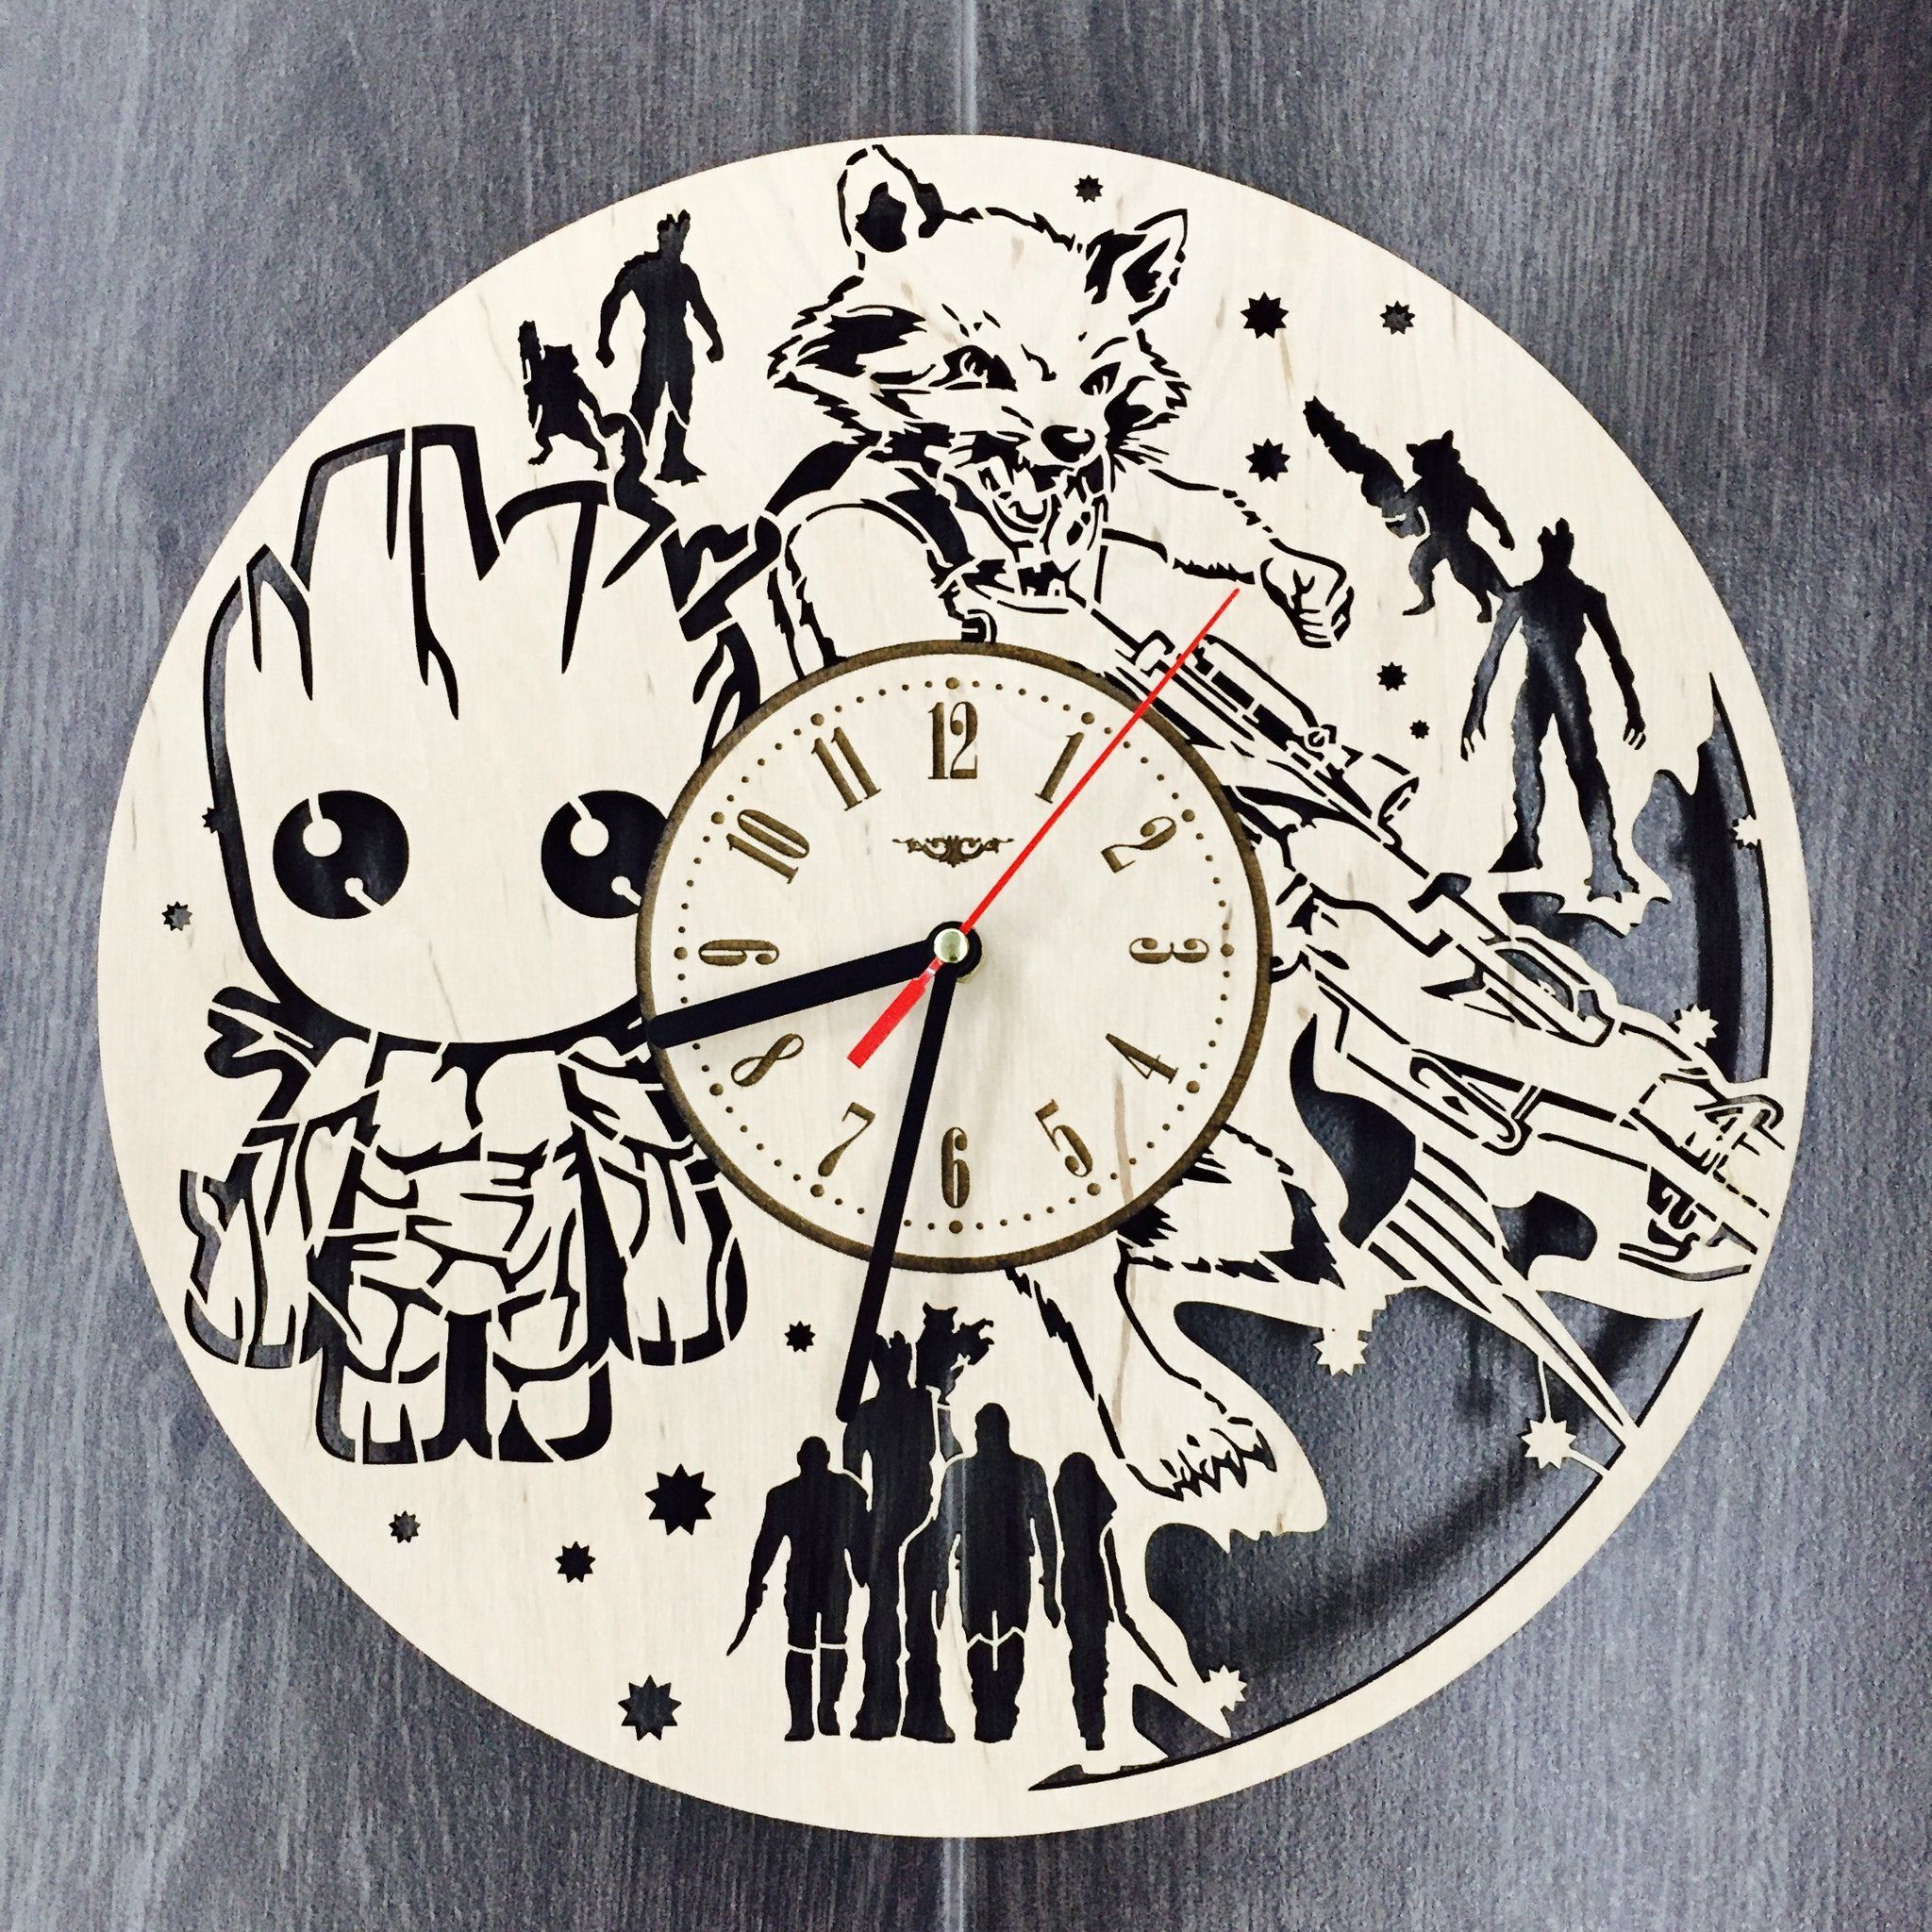 Guardians Of Galaxy Wall Wood Clock 31 99 Size 12 In 30 Cm Really Cool Gift And Unique Home Decoration Can Be Persona Wood Clocks Clock Comics Wall Art